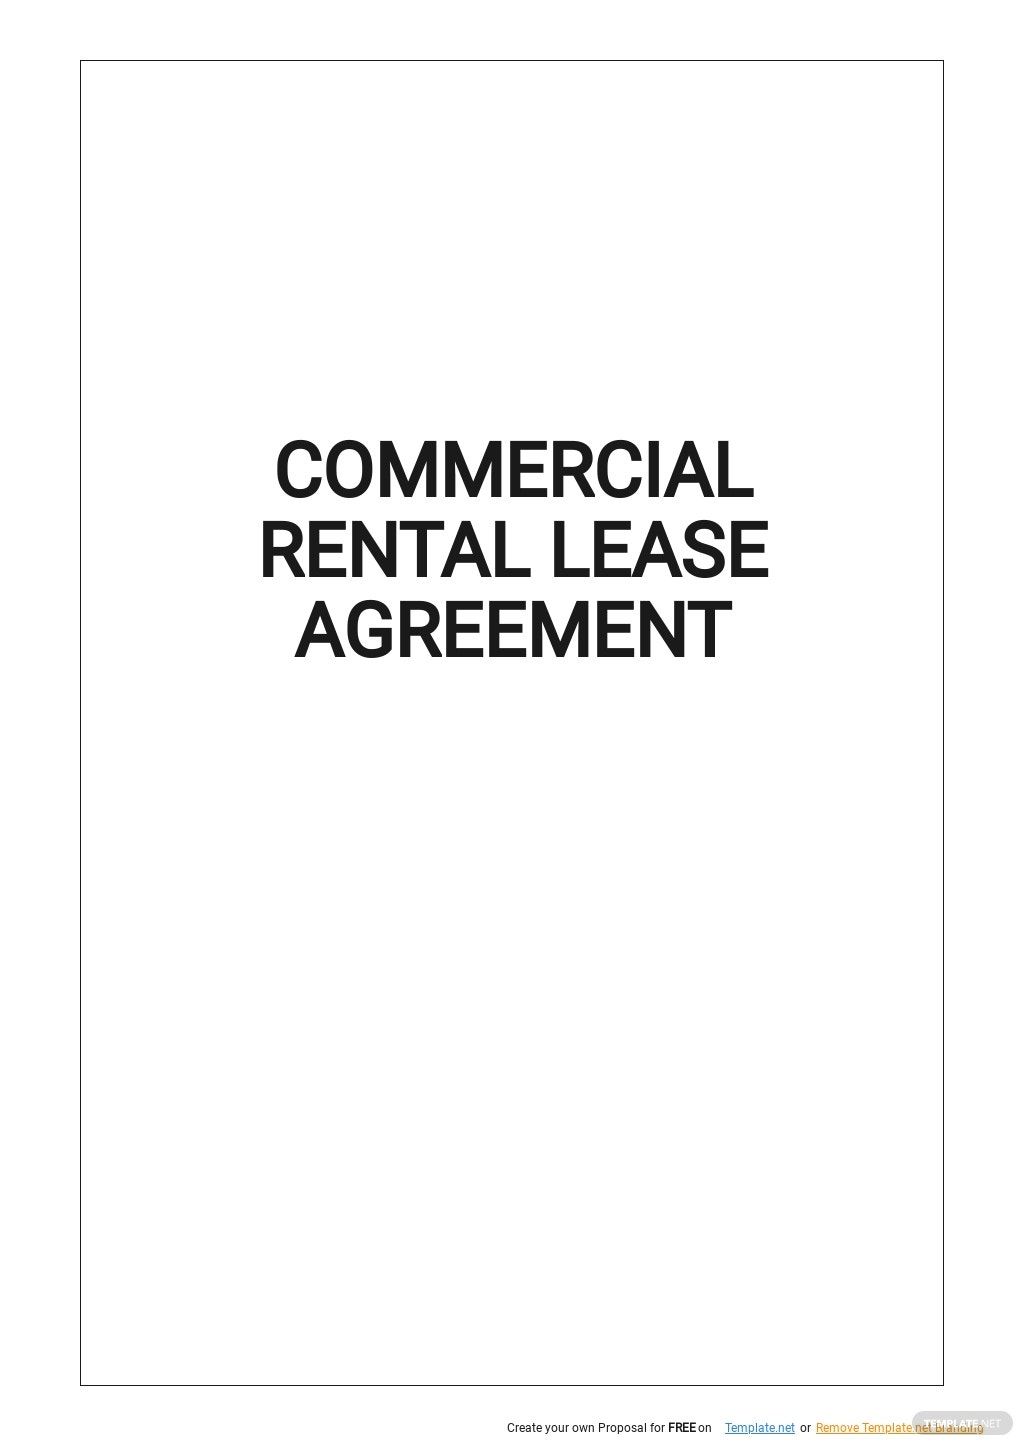 Commercial Rental Lease Agreement Template.jpe